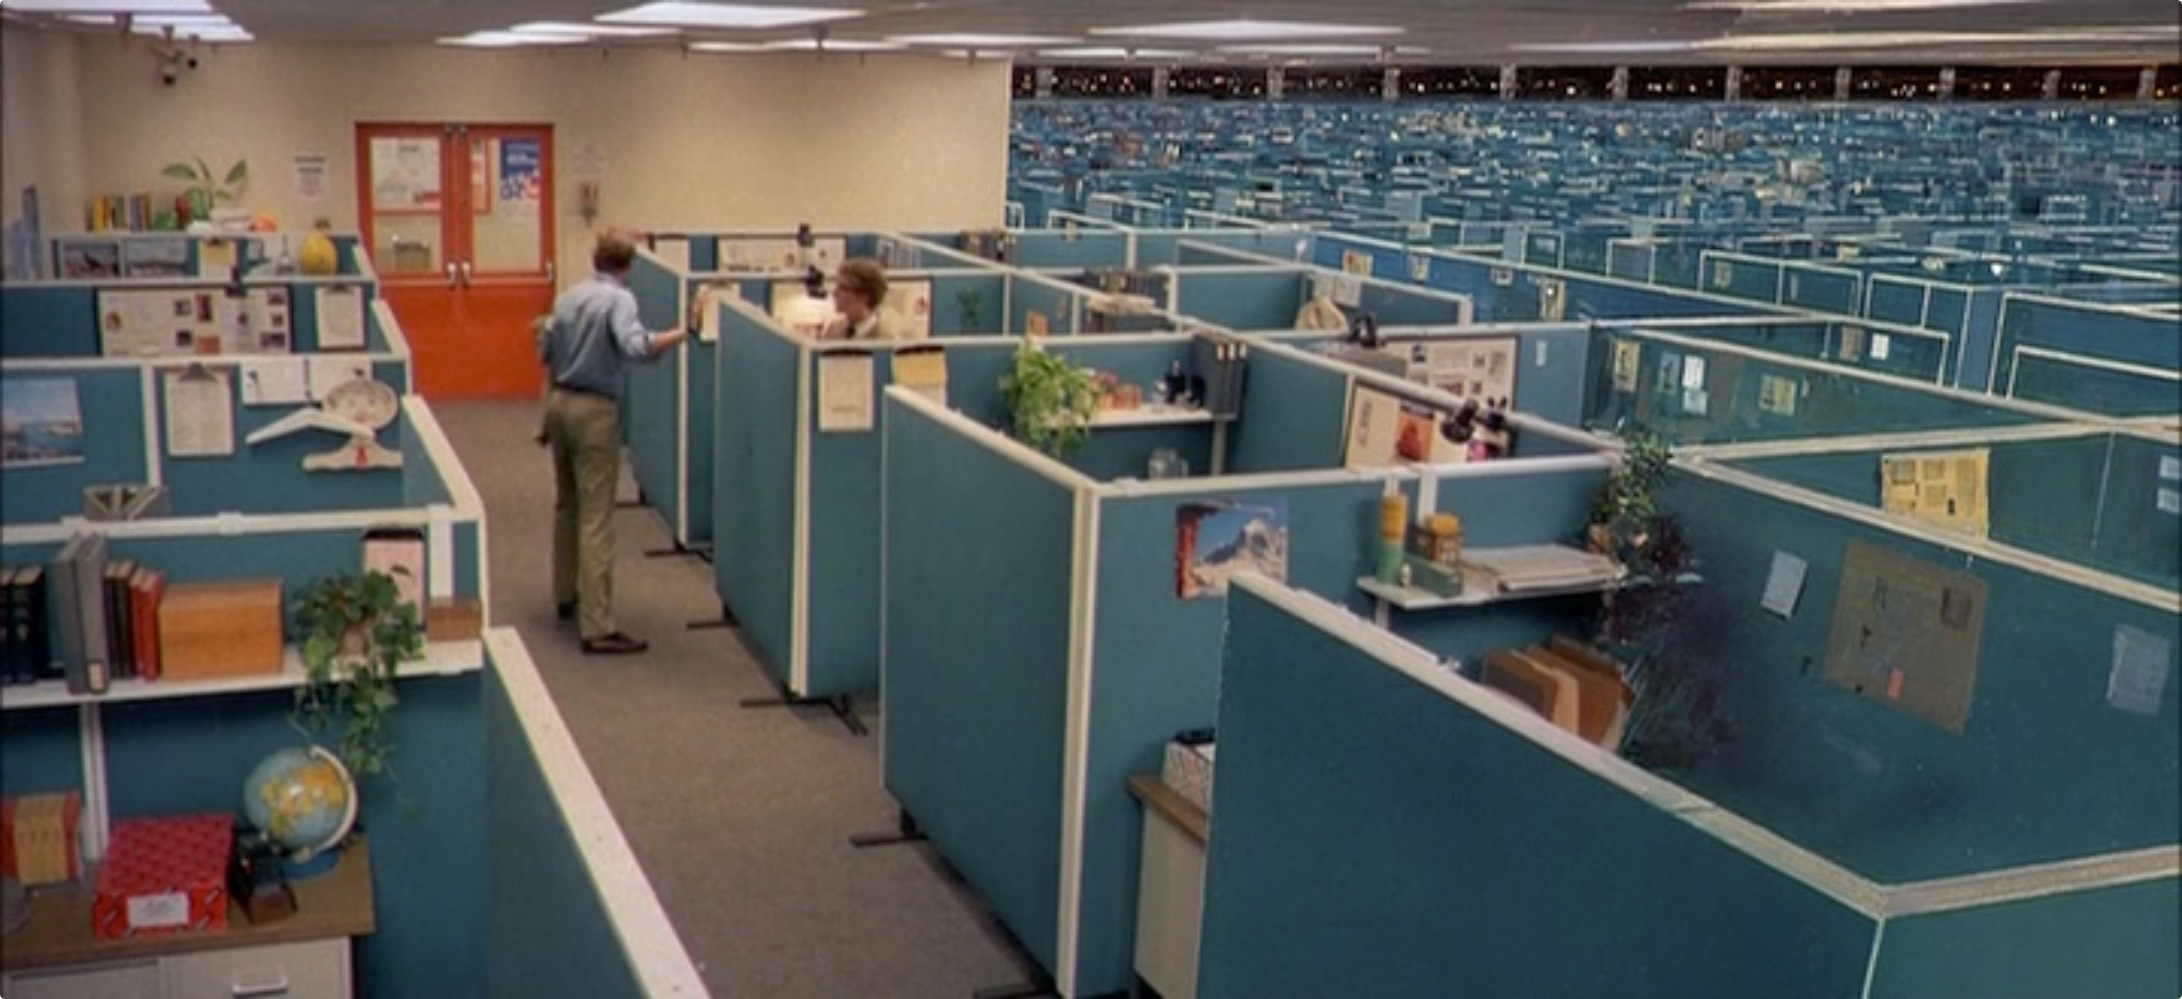 The call center floor looked and felt a lot like this famous matte painting-enhanced shot from <em>Tron</em>.